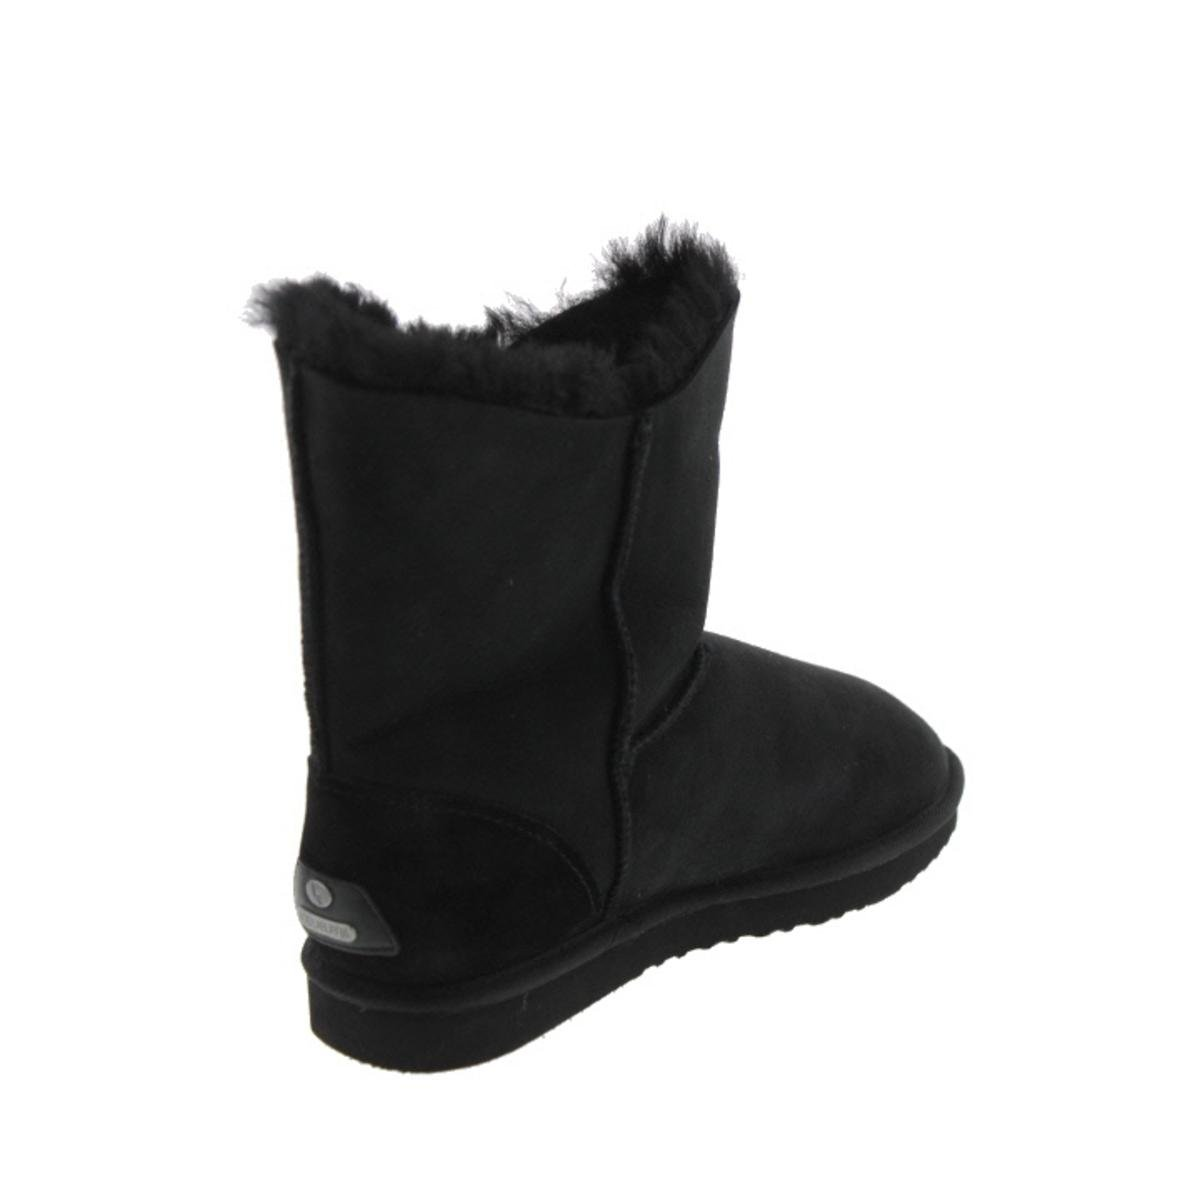 Koolaburra Women's Double Halo Short Snow Boot B00MCBN2F0 11 B(M) US|Black Suede